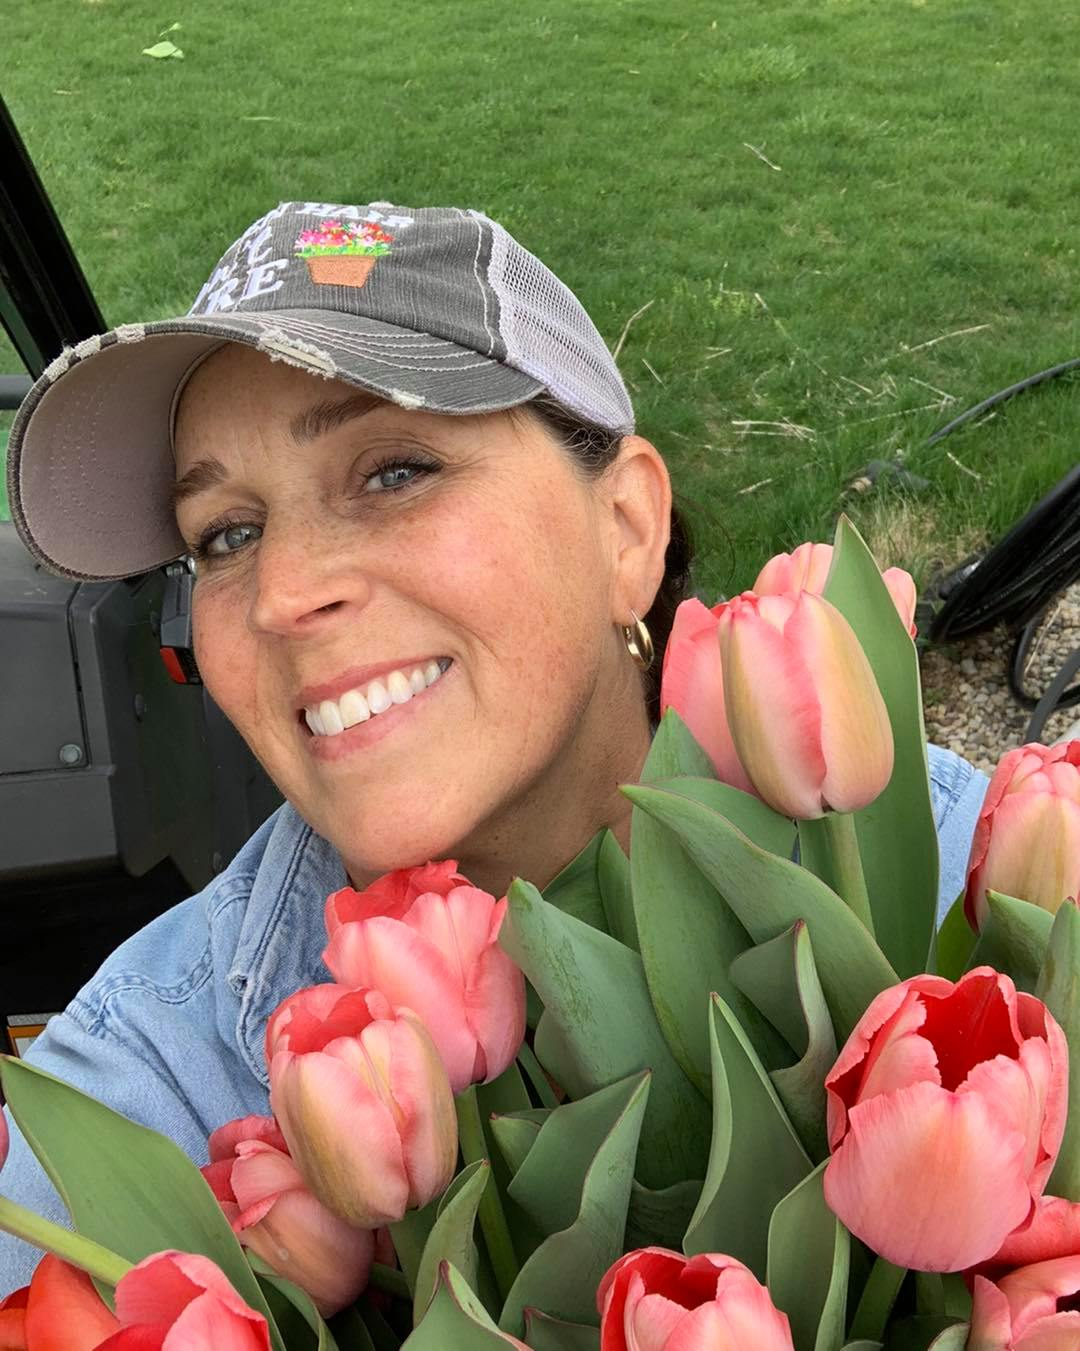 Tracy holding flowers